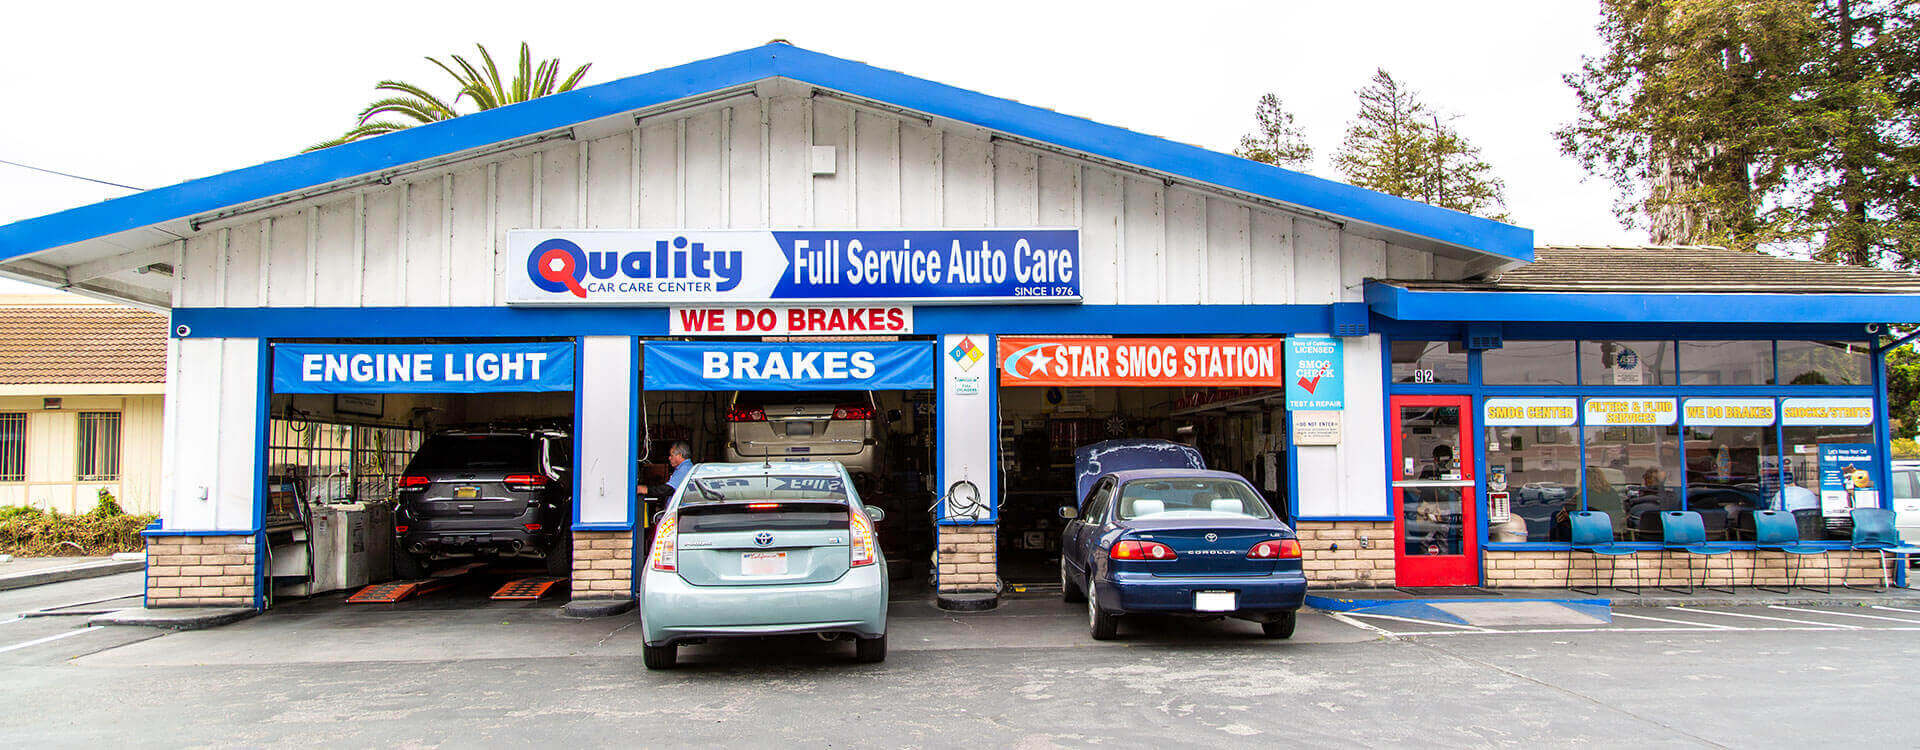 Repair Shop Silicon Valley Auto Repair Quality Tune Up Car Care